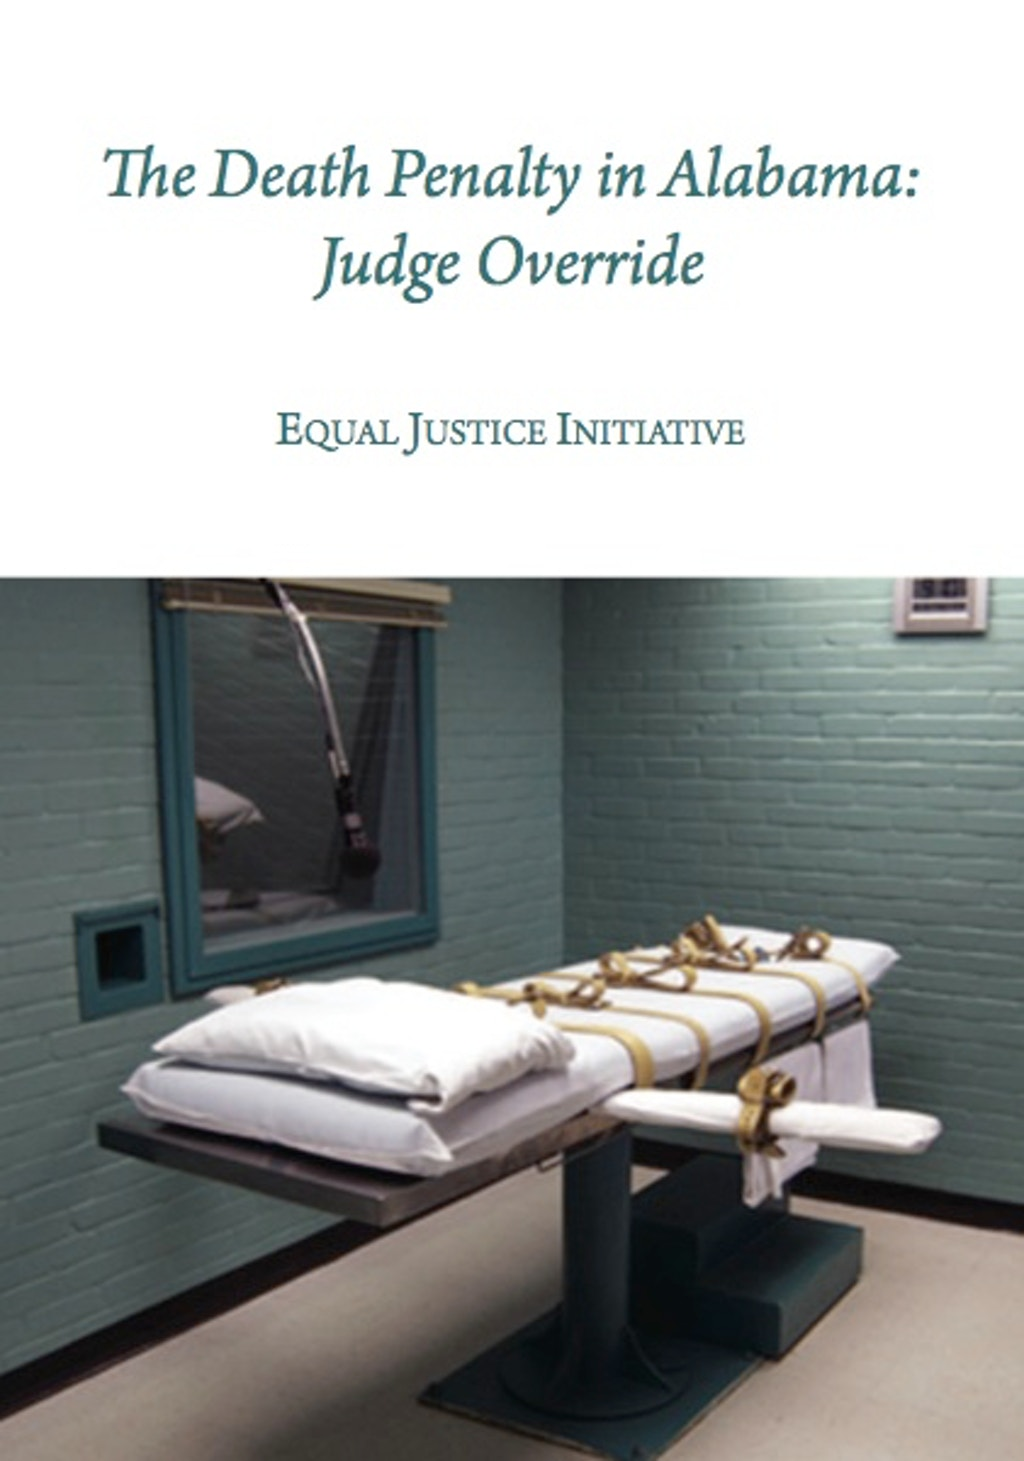 NEW RESOURCES: Judges in Alabama Imposing Death Sentences by Overriding Juries